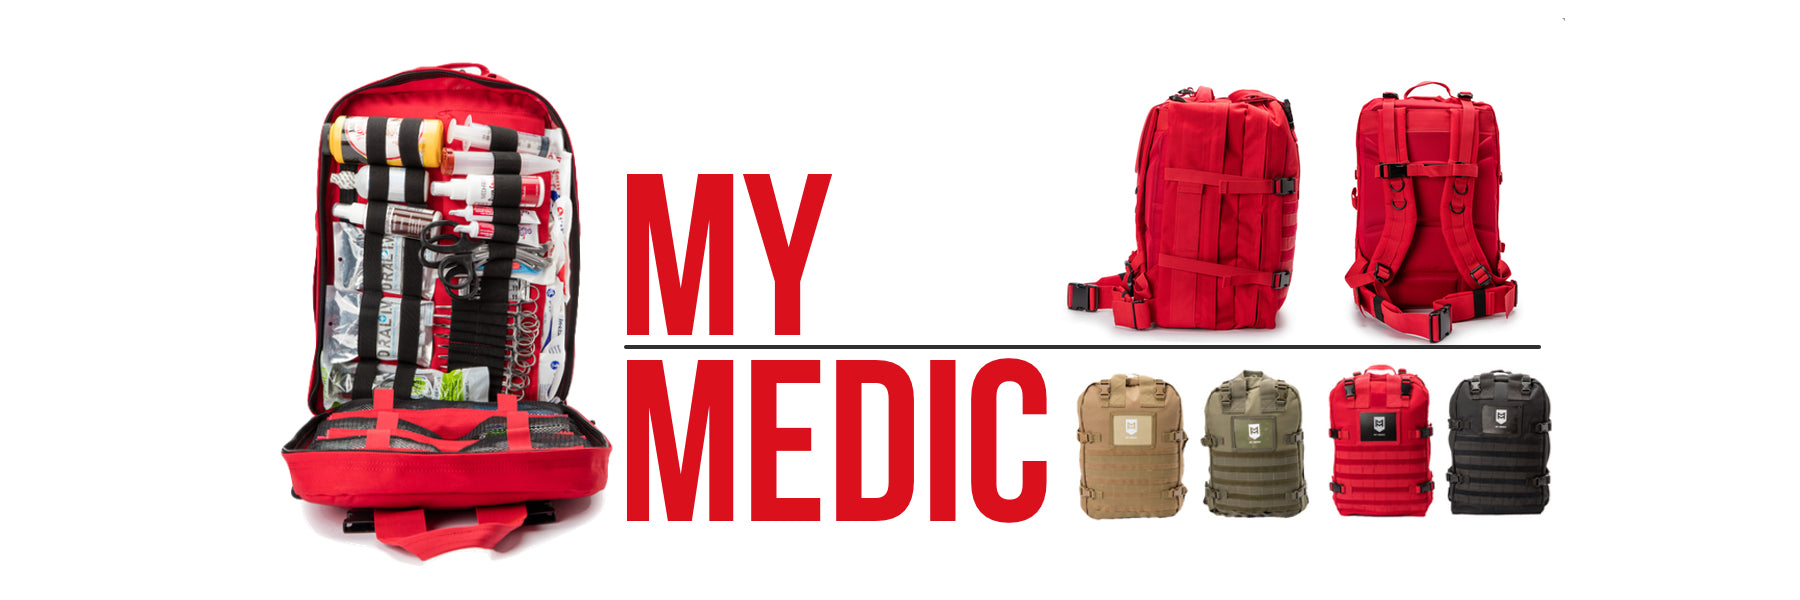 The Medic First Aid Kit